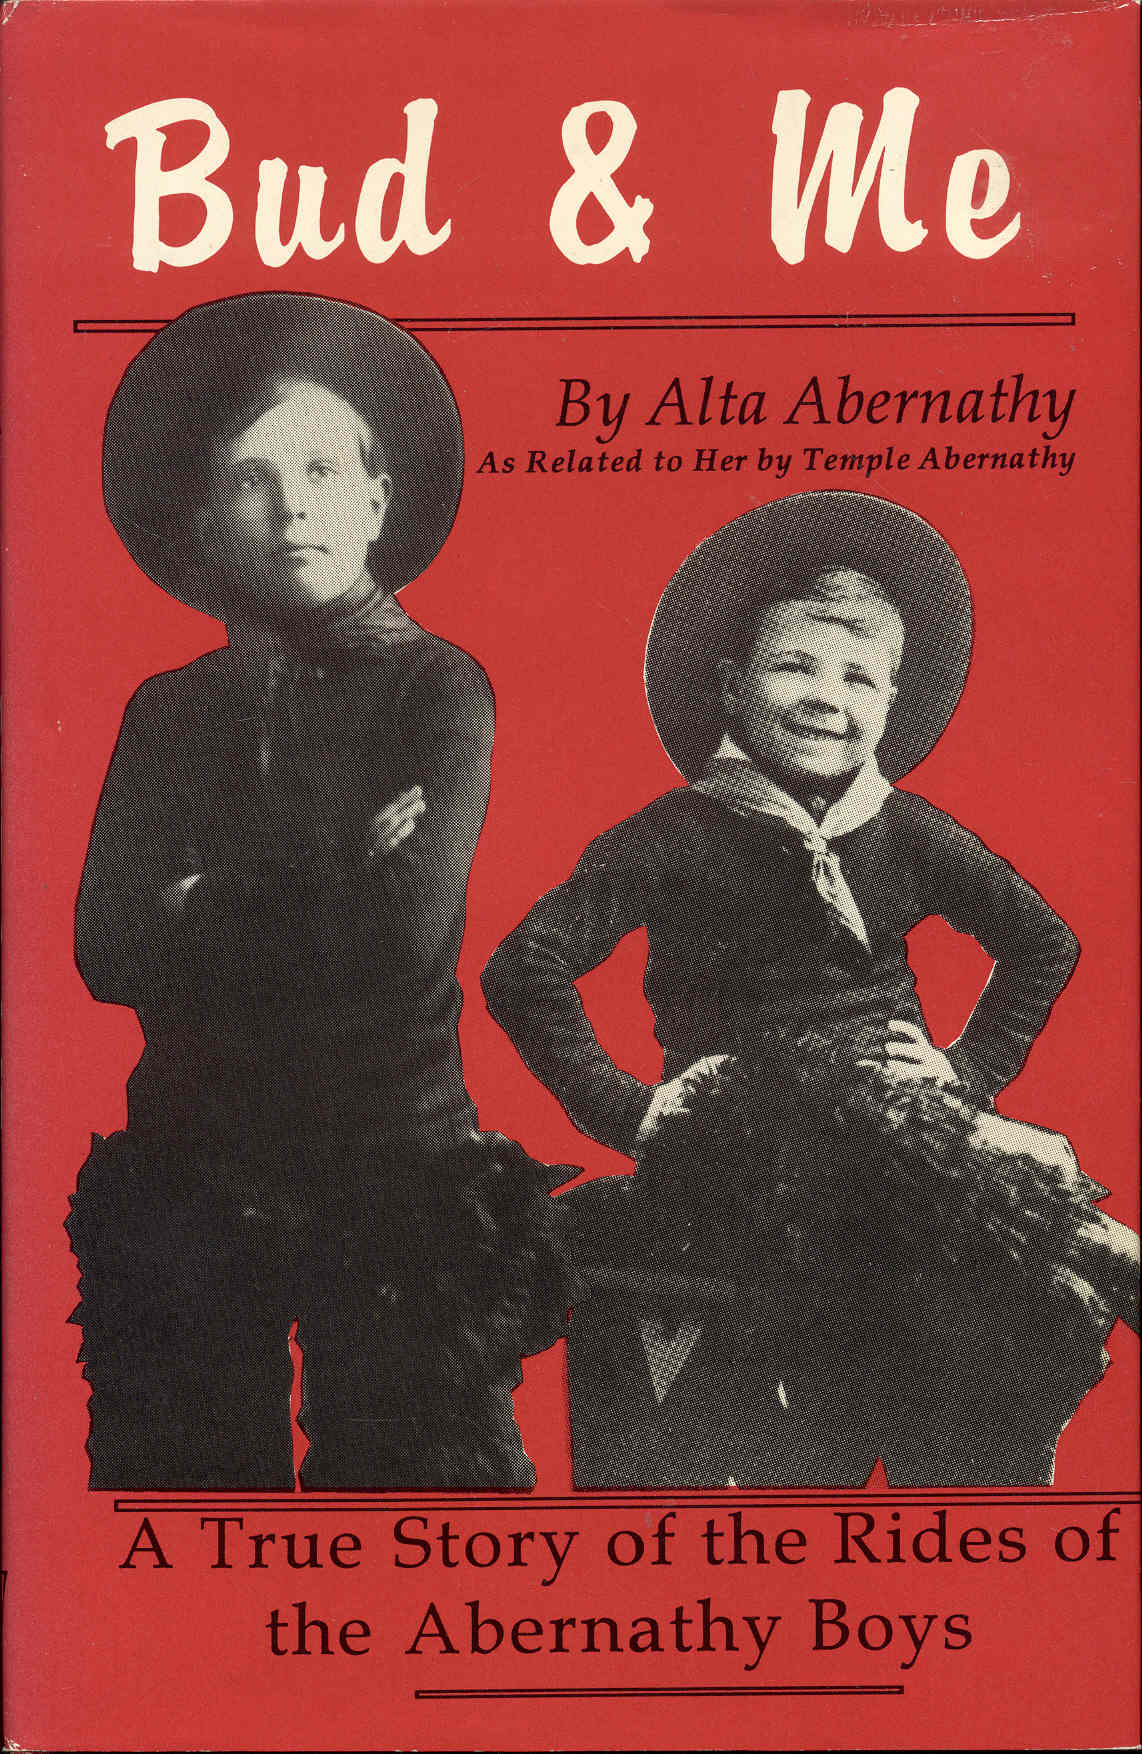 Image for Bud & Me: A True Story of the Rides of the Abernathy Boys